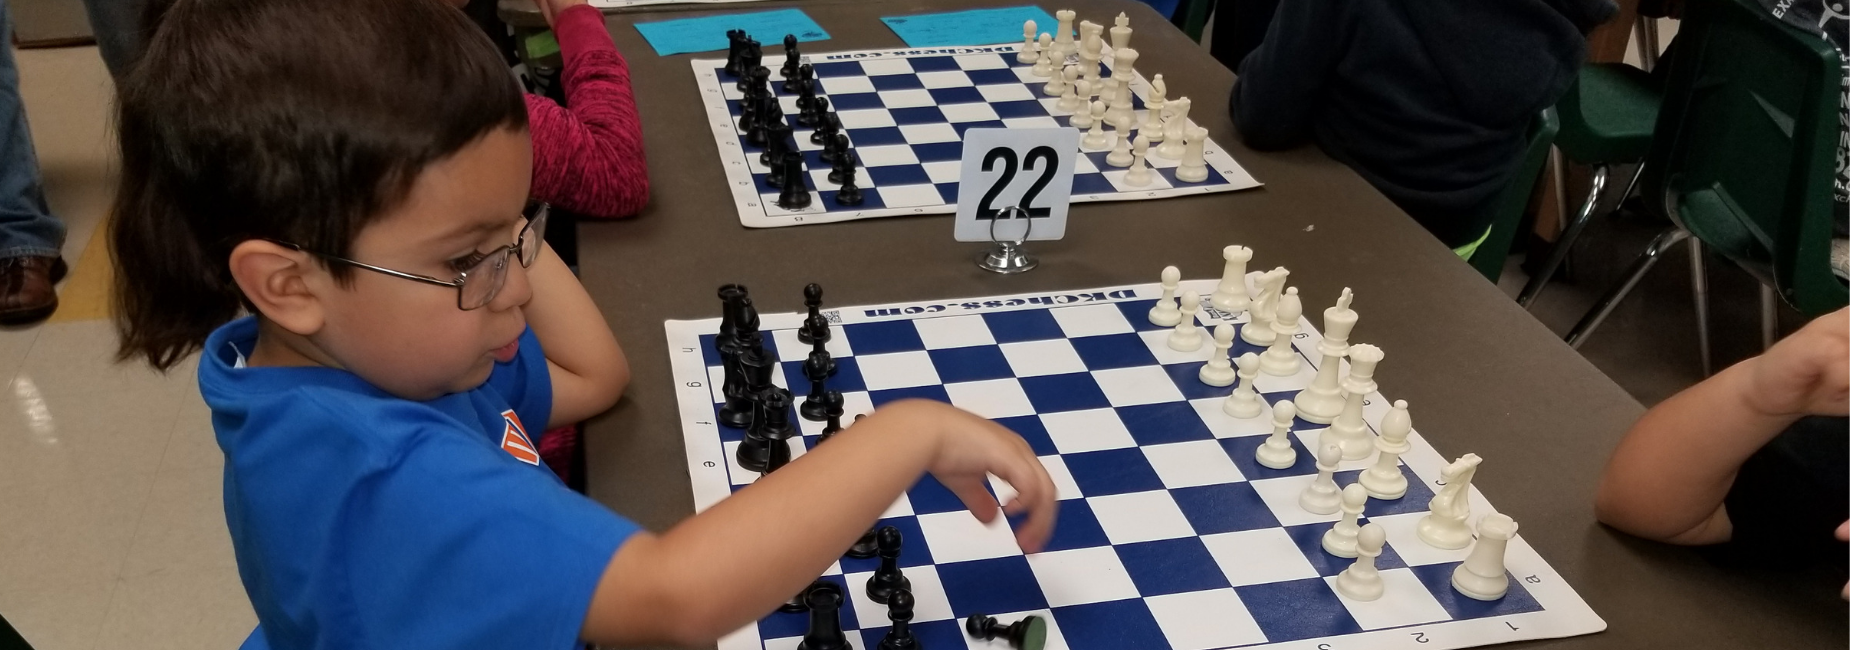 Kinder chess player at first tournament.